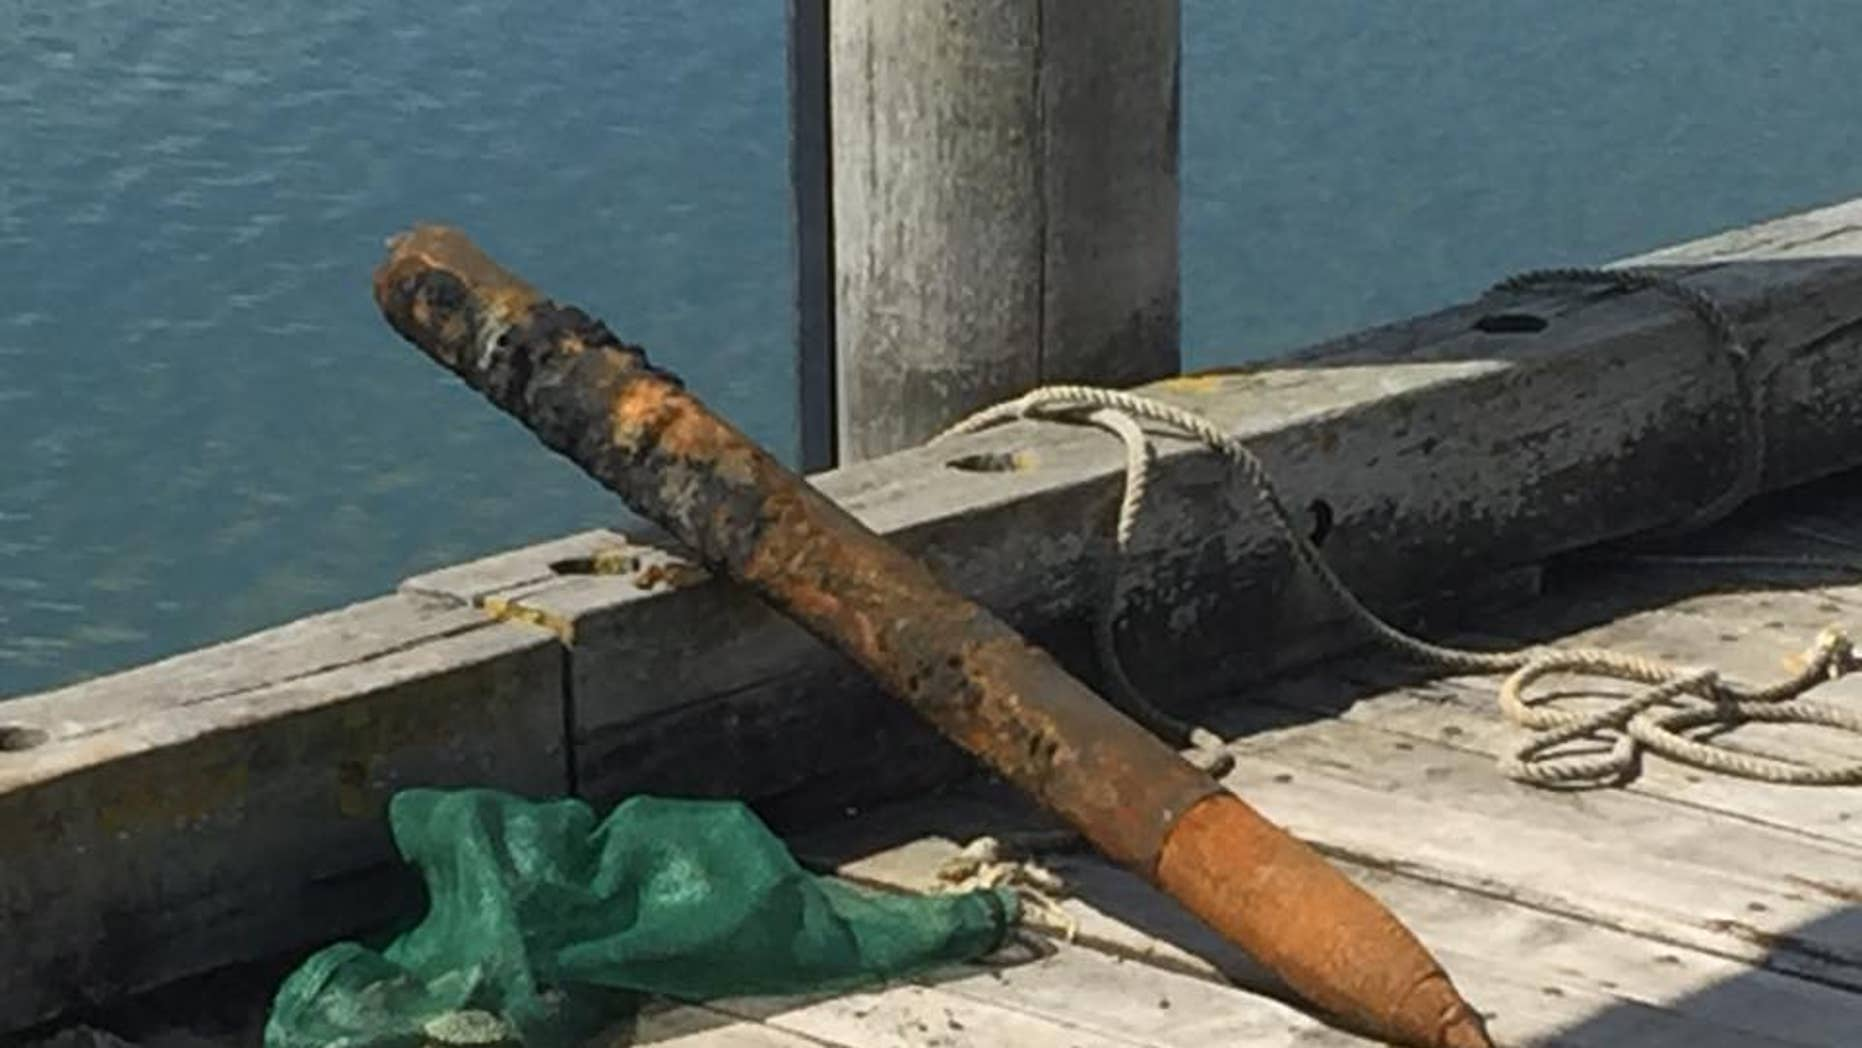 The fishermen found the missile while searching for clams, Lt. Higgins said.